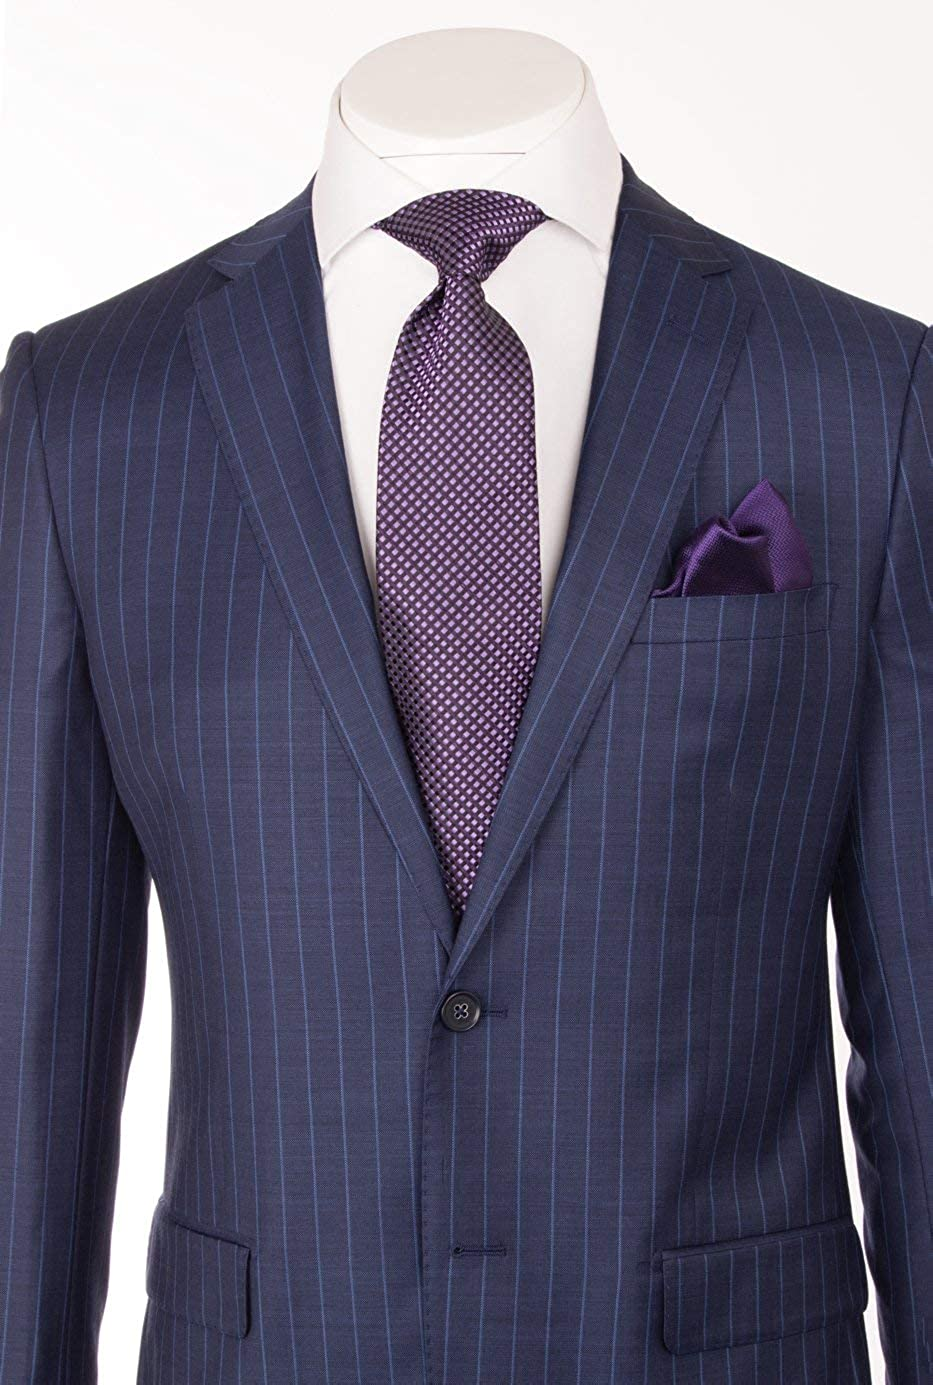 Porto Slim Fit, New Blue with F.Blue Pinstripe, Pure Wool Suit by ...